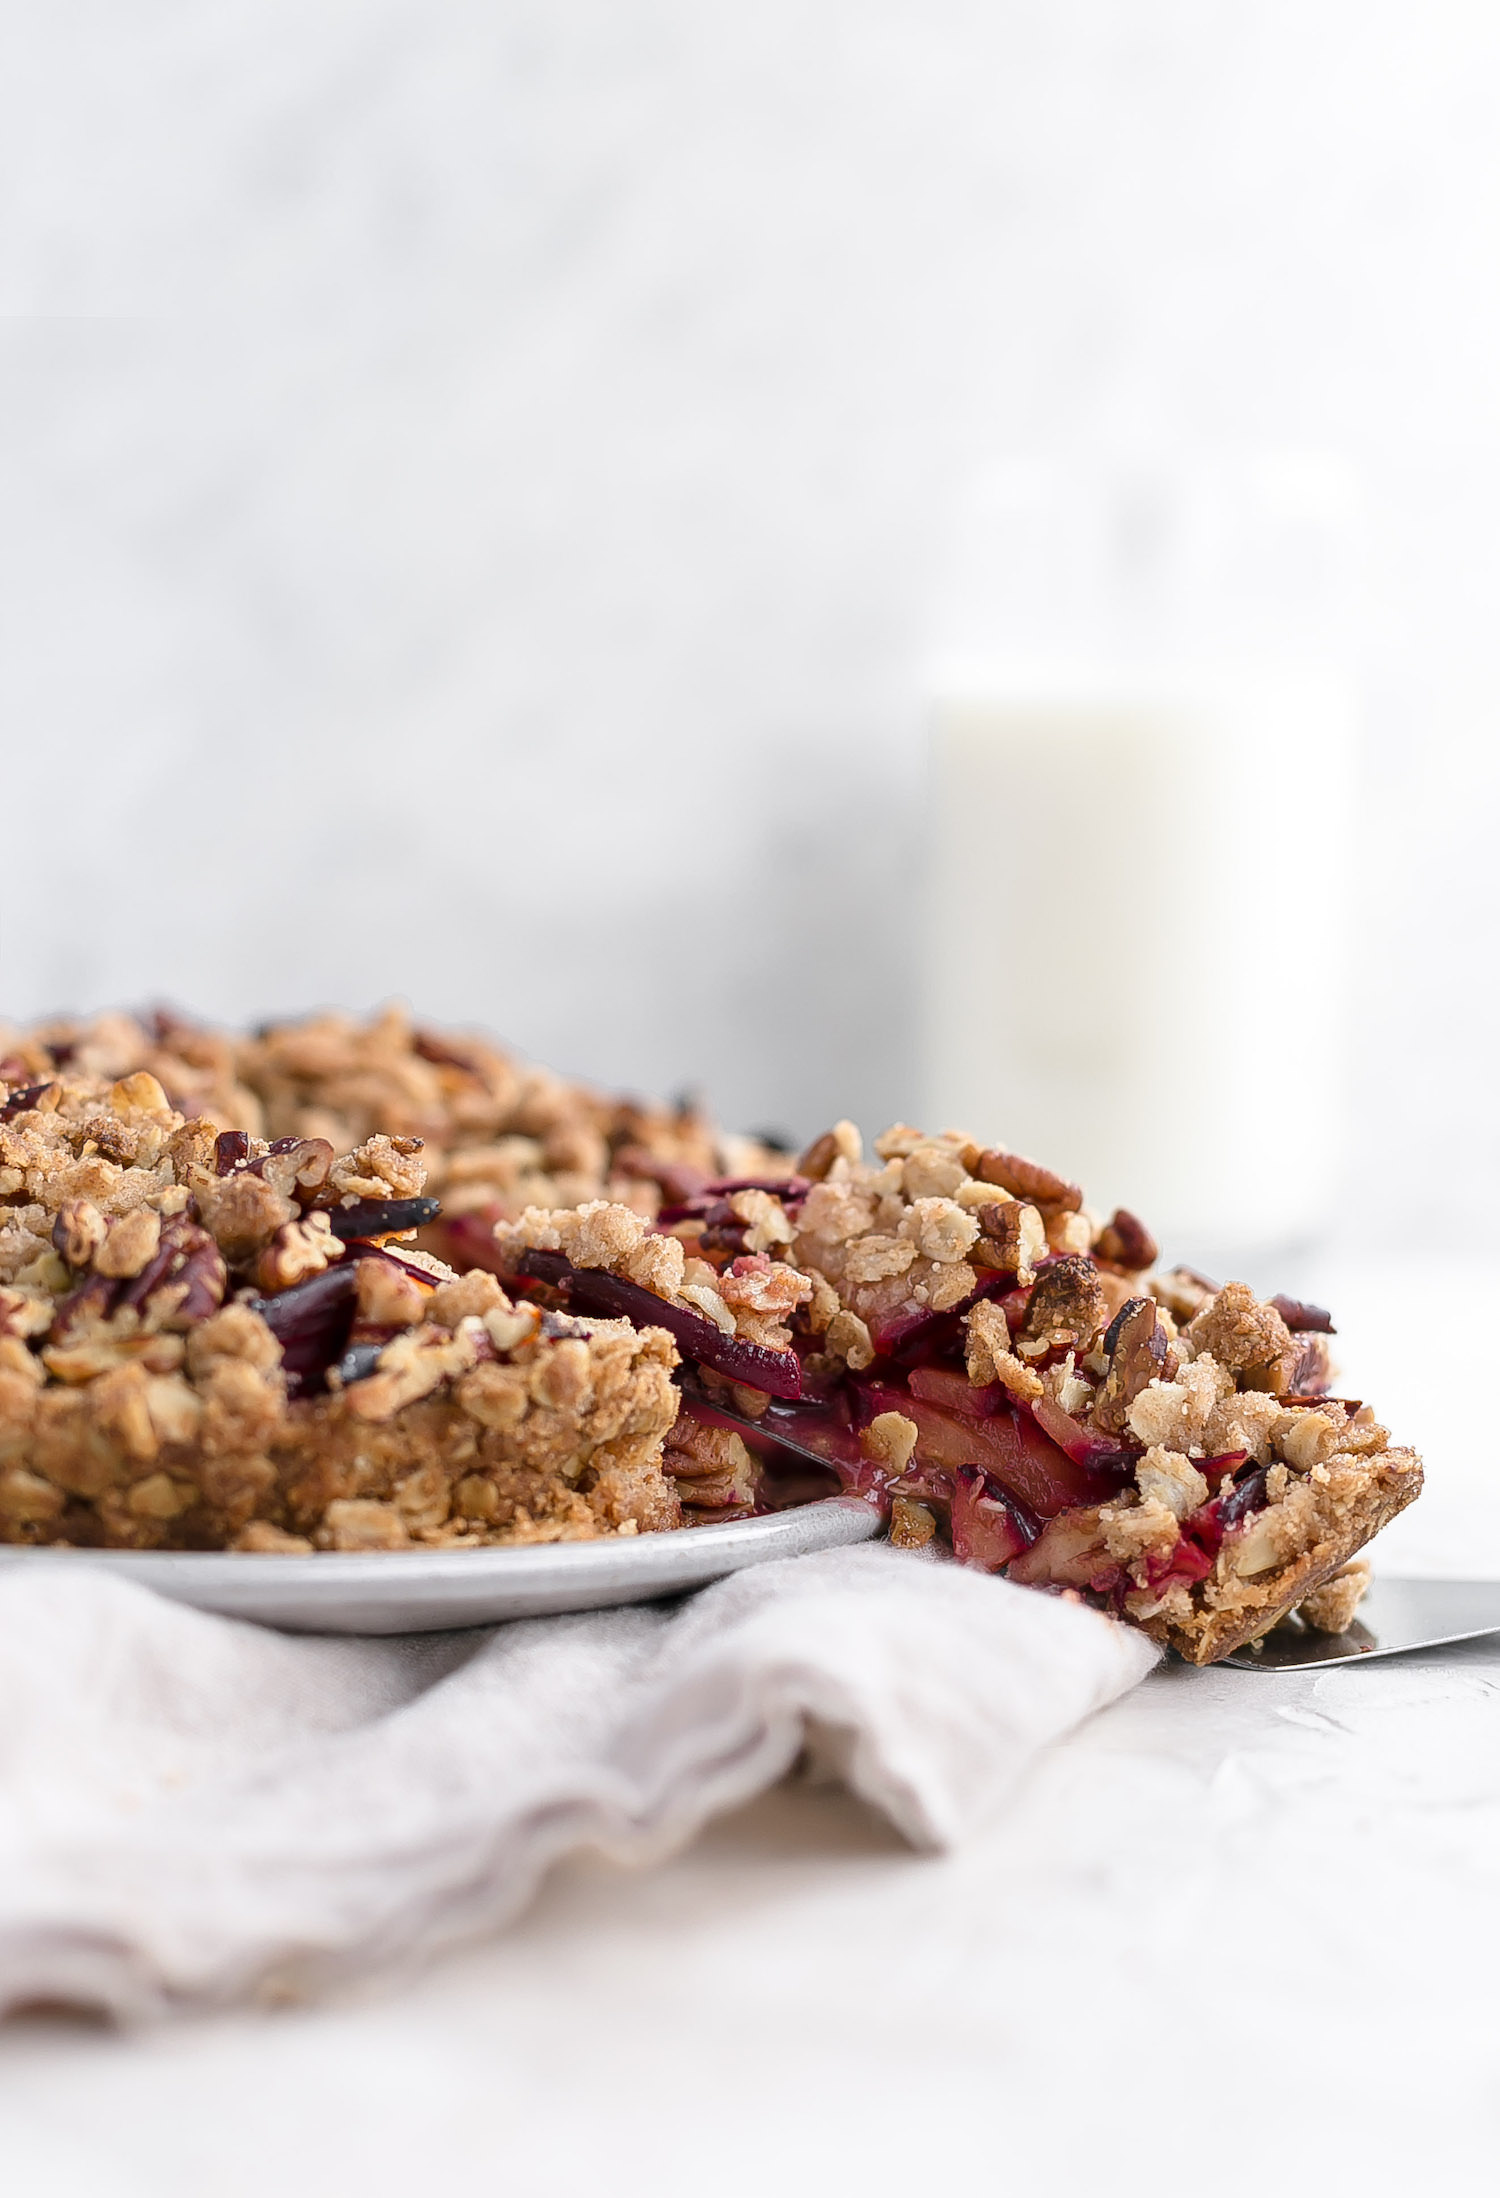 Whole Wheat Plum Pecan Oat Crumble Tart: crispy, crunchy oat crust topped with a juicy plum filling and sprinkled with a pecan oat crumble. Dairy-free! | TrufflesandTrends.com